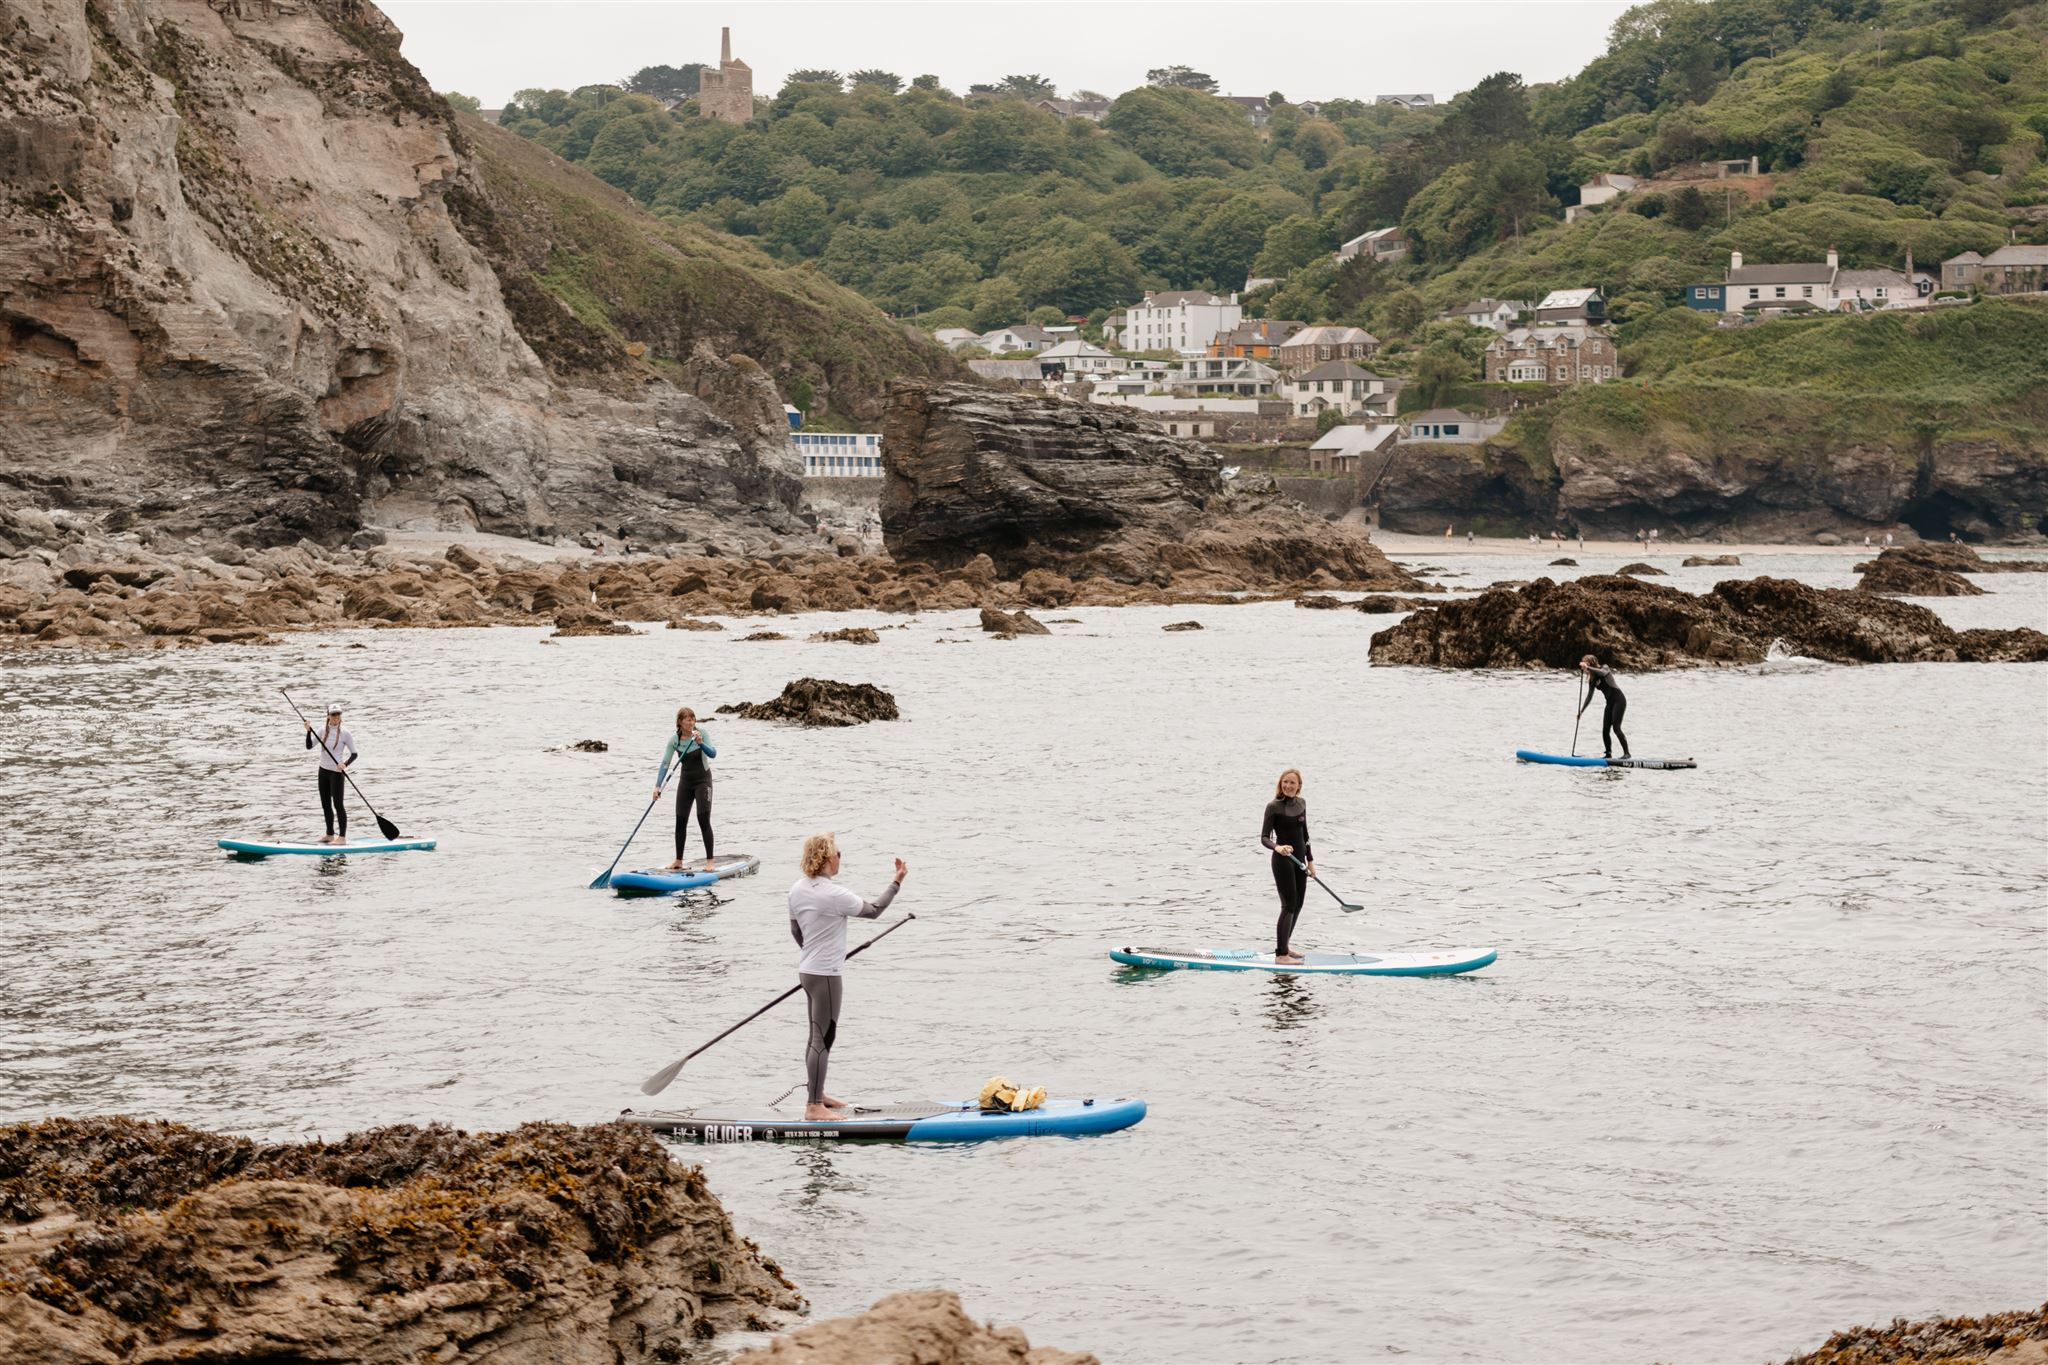 Stand Up Paddleboard lesson